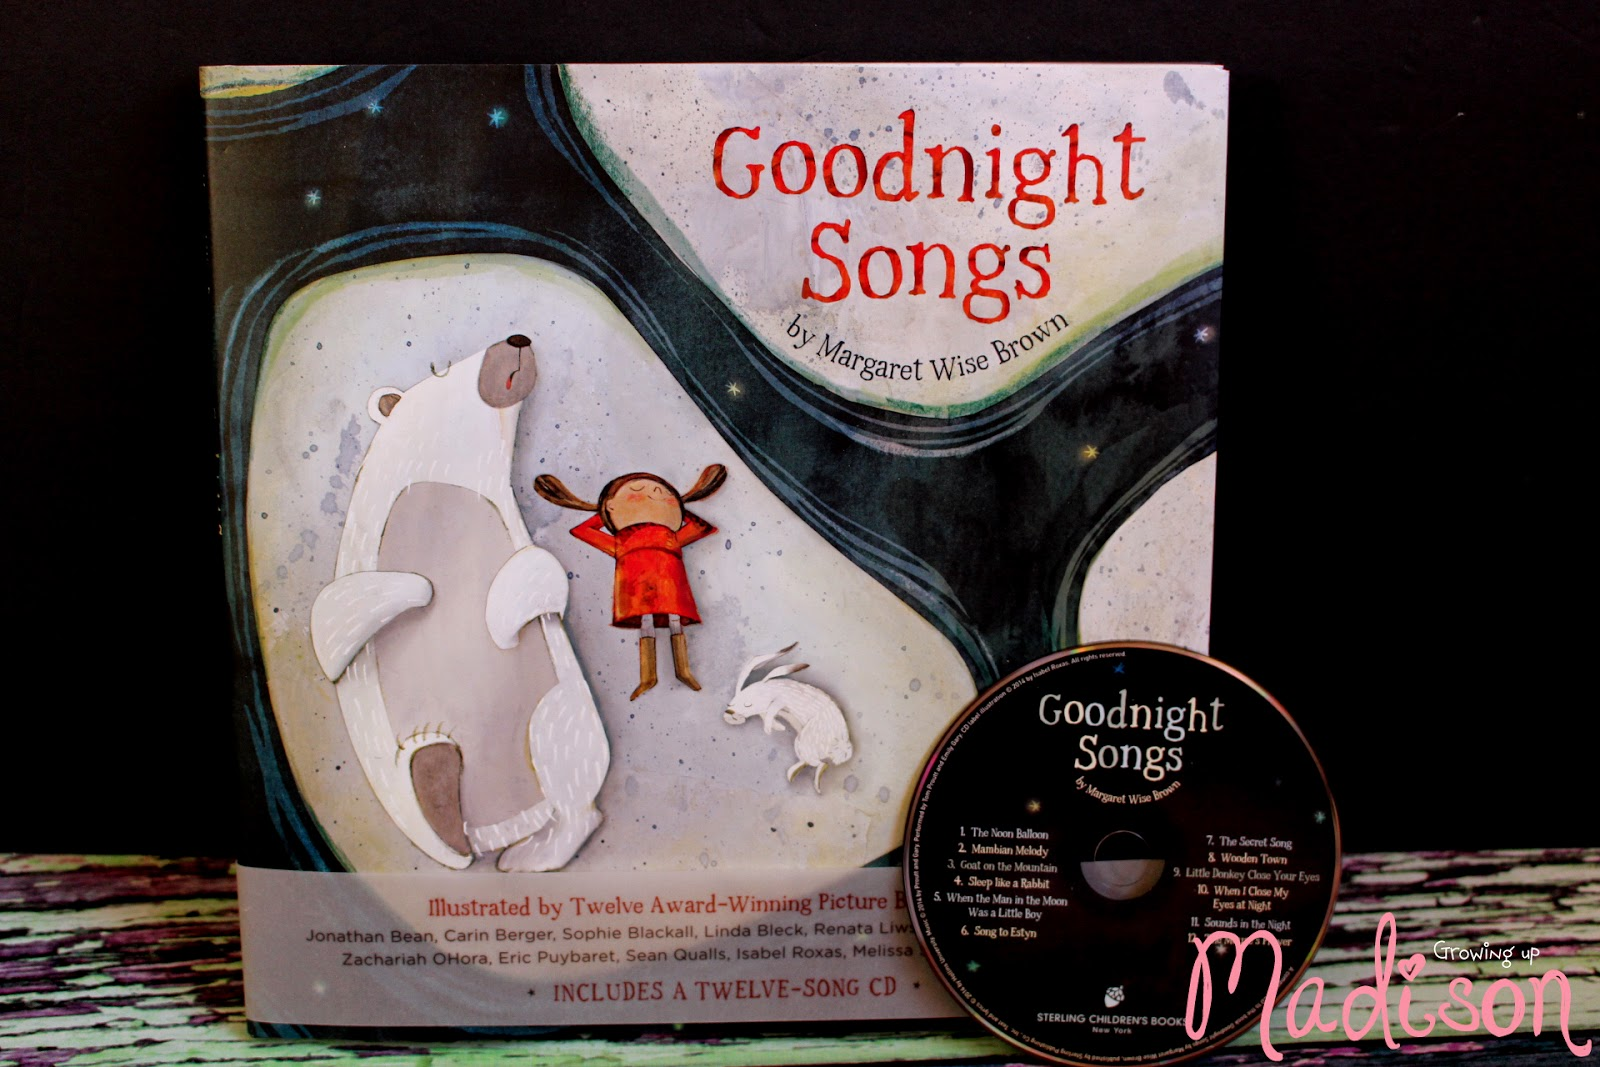 Goodnight Songs by Margaret Wise Brown - AnnMarie John